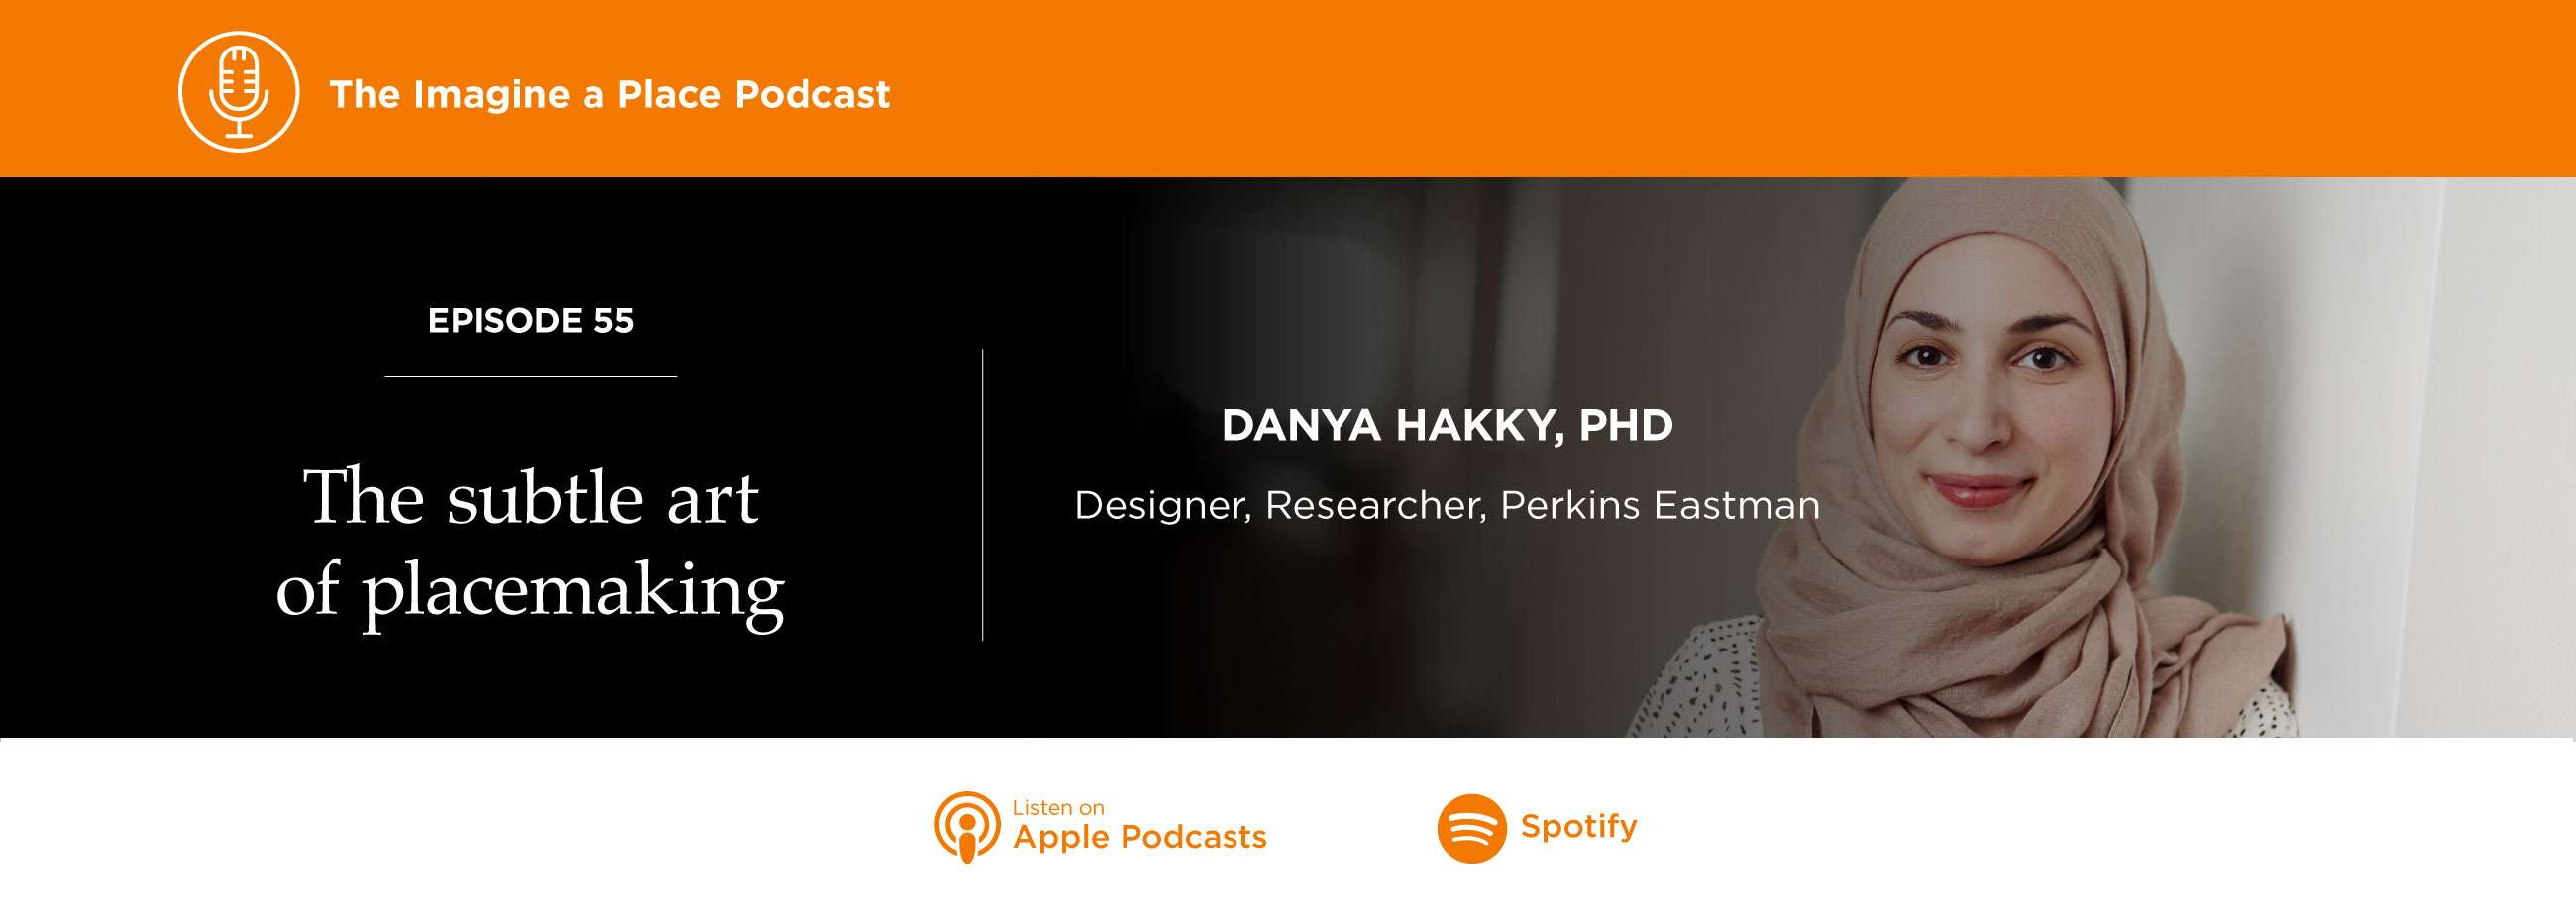 Danya Hakky of Perkins Eastman on the Imagine a Place podcast